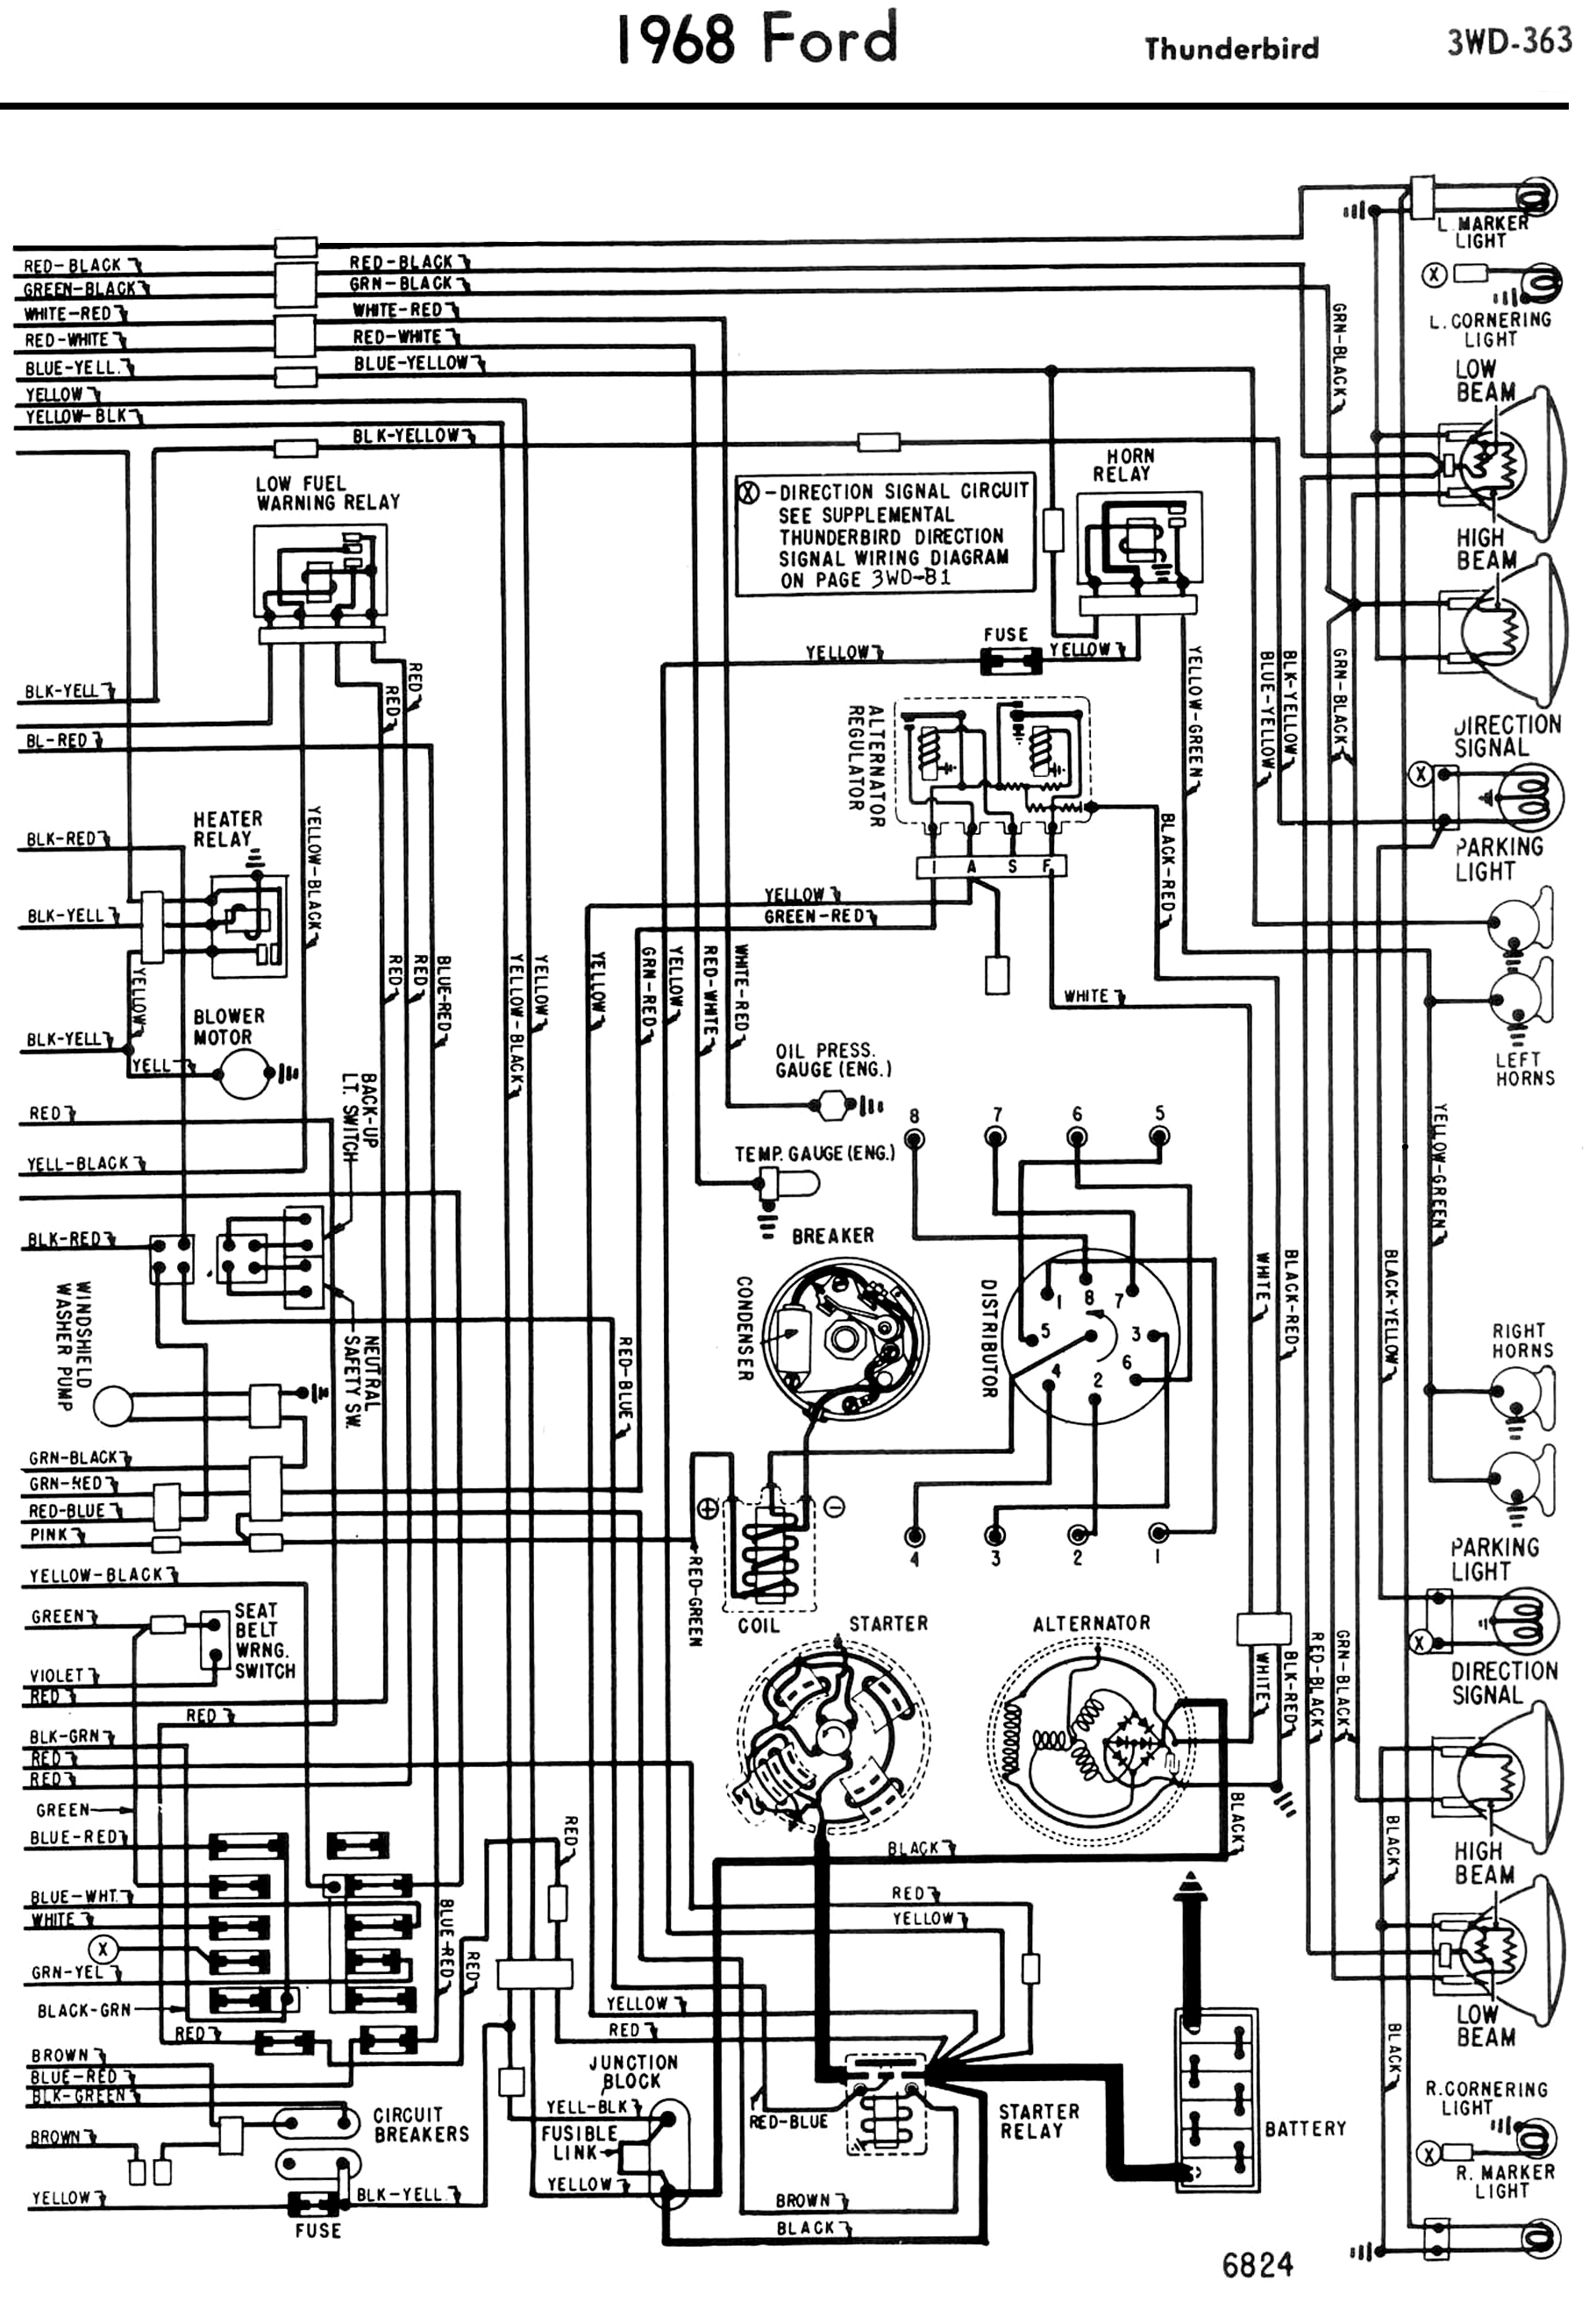 Ford Lt9000 Starter Wiring Library 1958 68 Electrical Schematics Rh Squarebirds Org 1968 Diagram